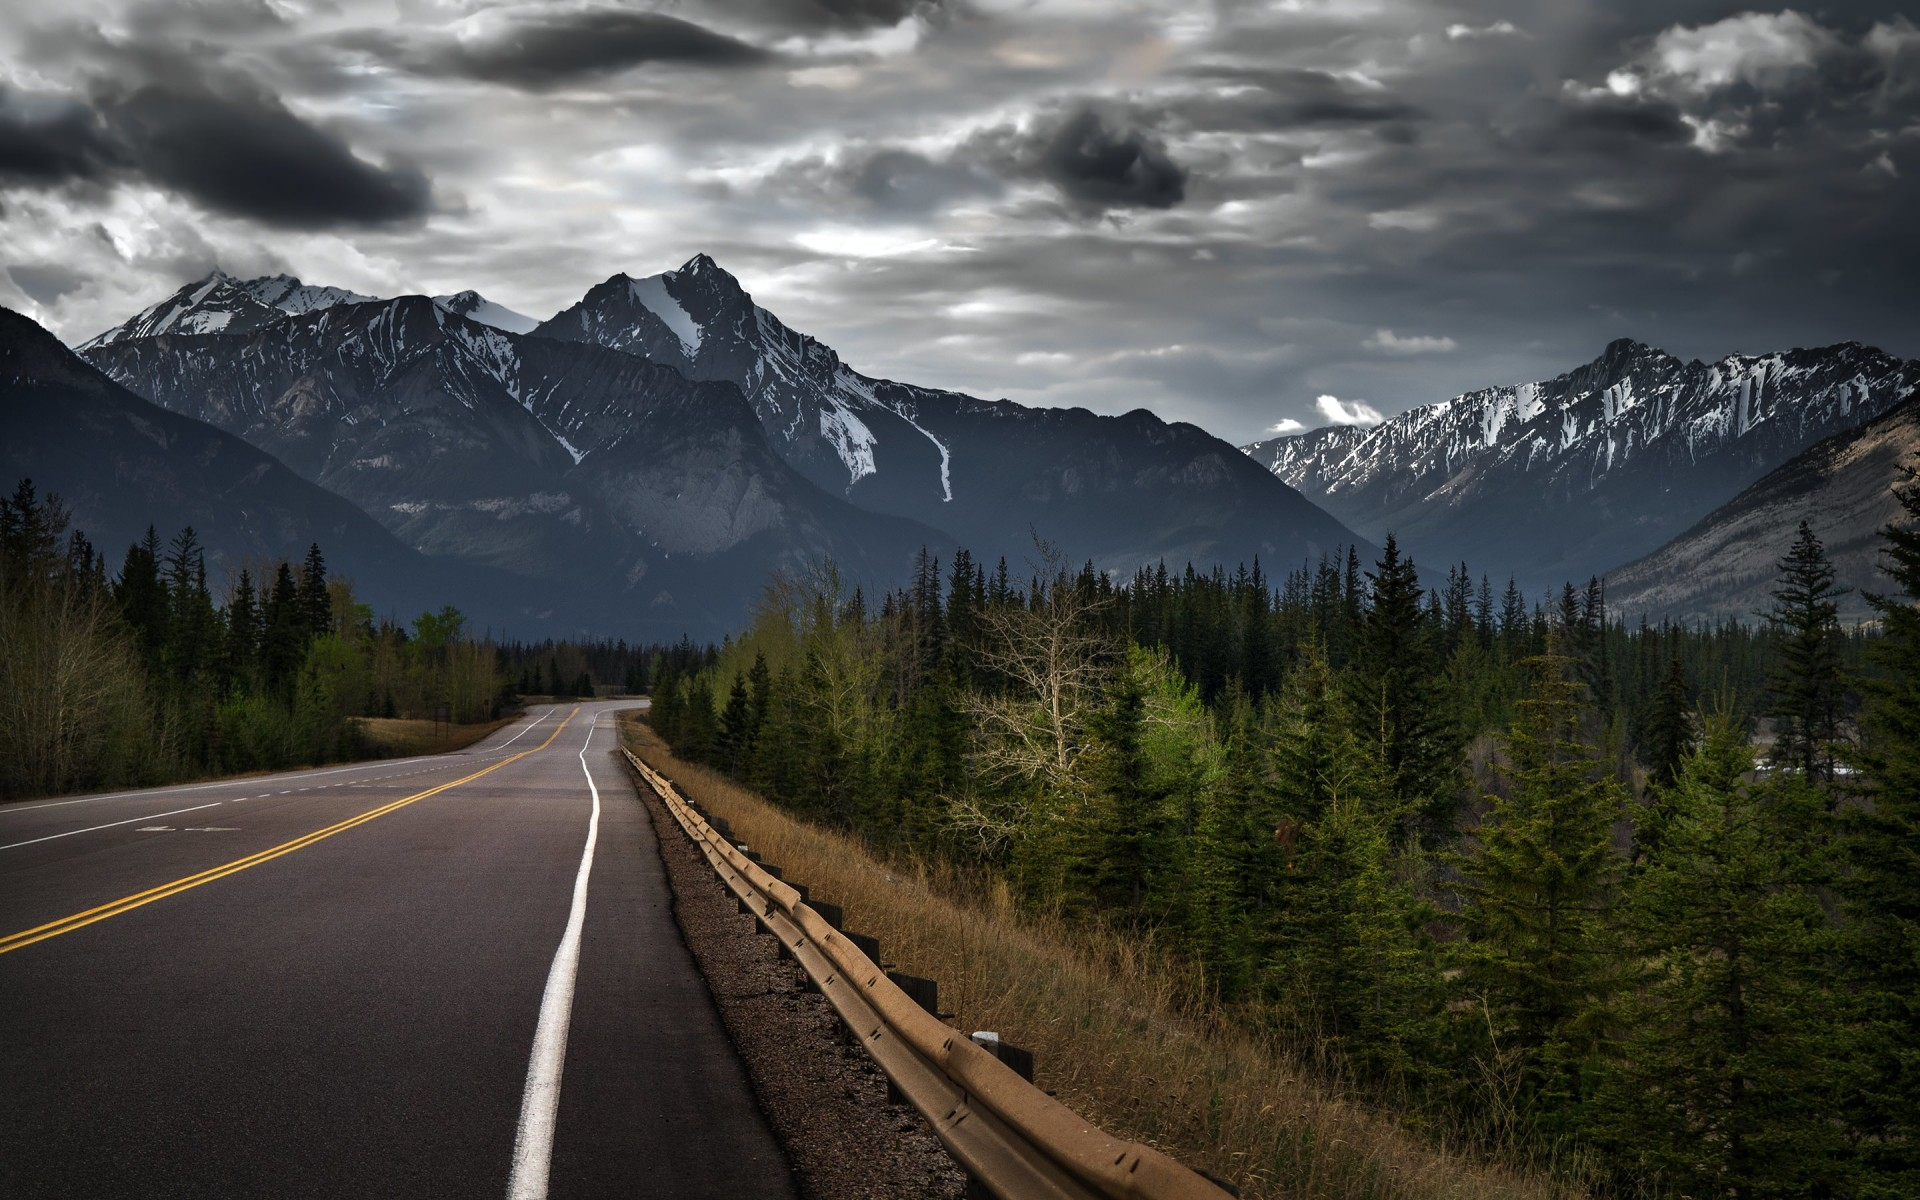 Road trip on a stormy day, Canada Wallpaper for Desktop 1920x1200